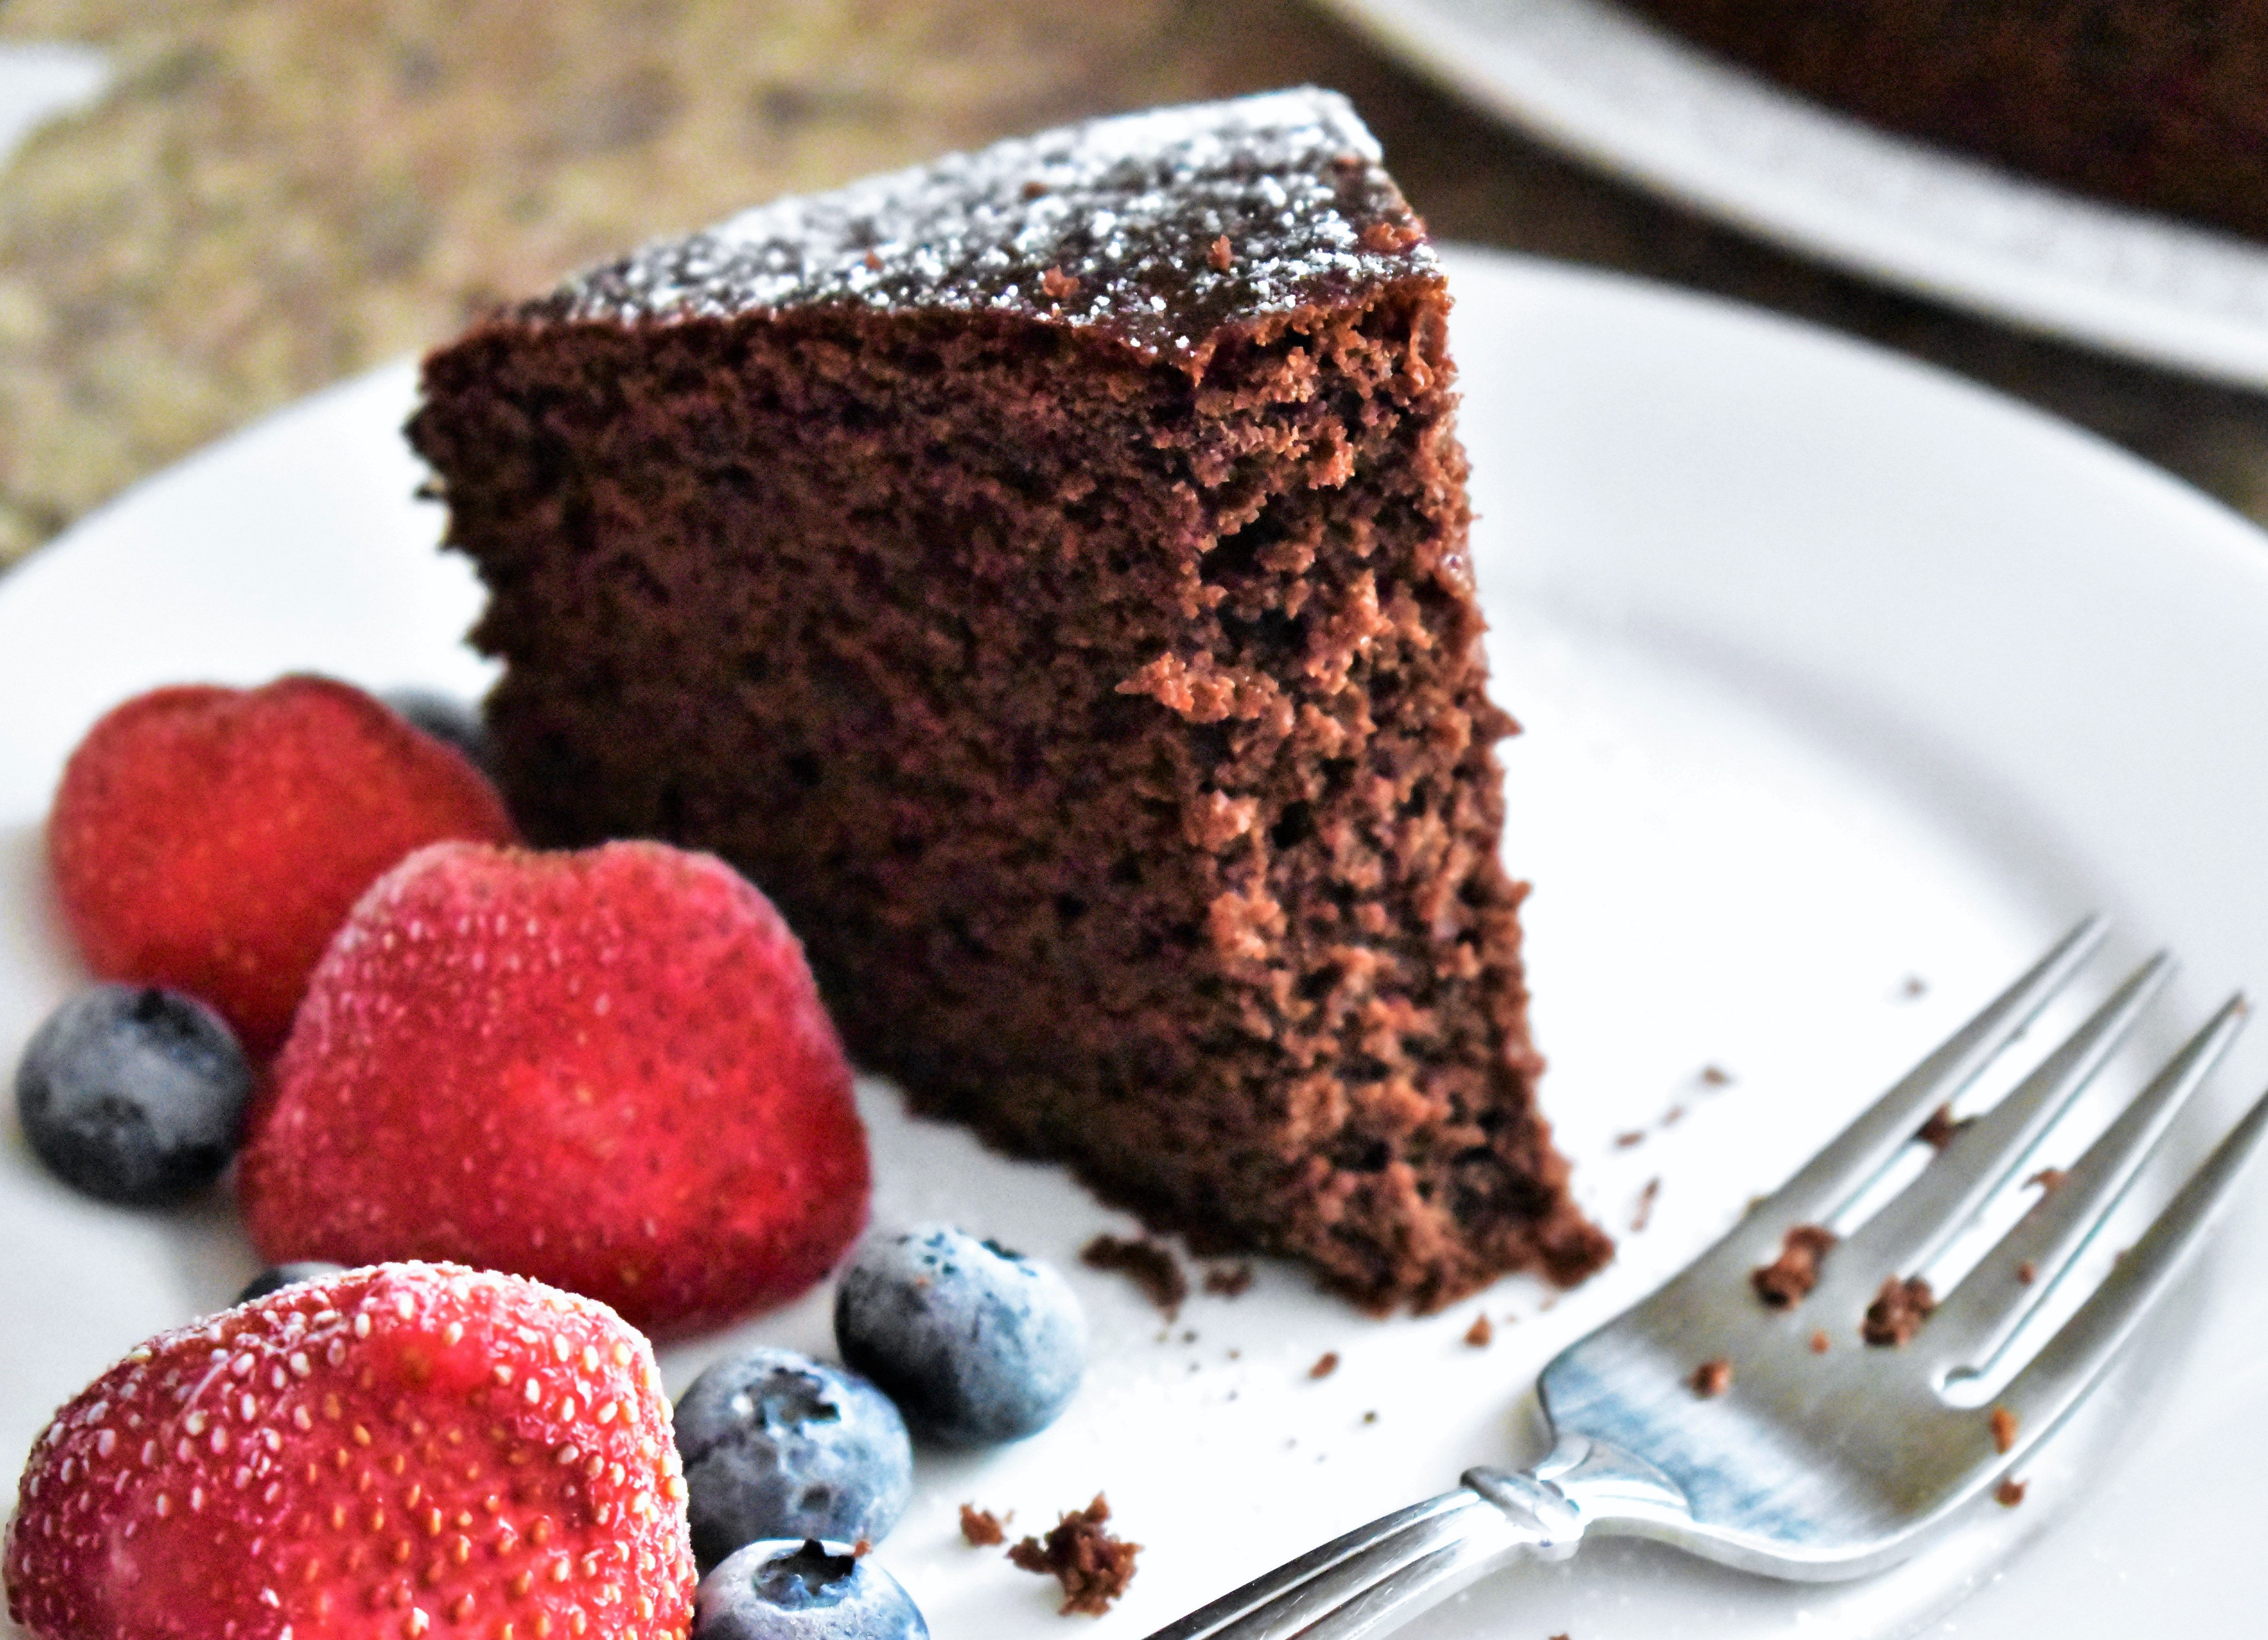 Full-fat yogurt helps keep this whole wheat chocolate mocha cake moist for several days. Serve with a dusting of powdered sugar and fresh berries, or top with chocolate frosting for a more decadent dessert.